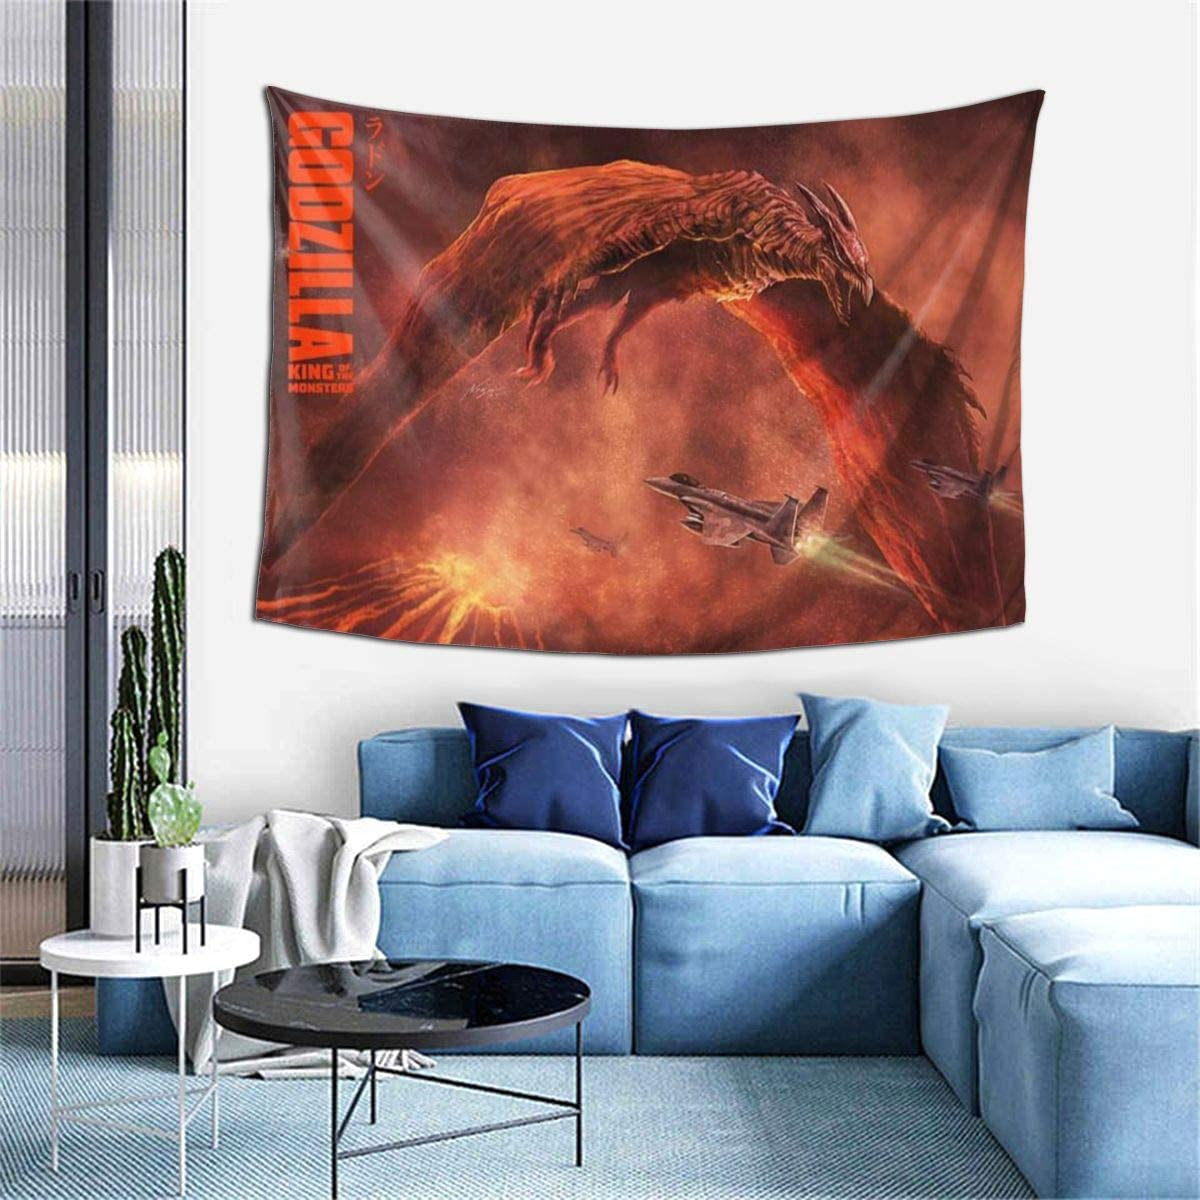 Amazon Com Jaiden Beata Godzilla Rodan Poster Classic Game Studio Room Decorations Tie Dye Hippie Psychedelic Tapestry Anime Poster Tapestries Game Wall Art Hanging Decor Home Kitchen